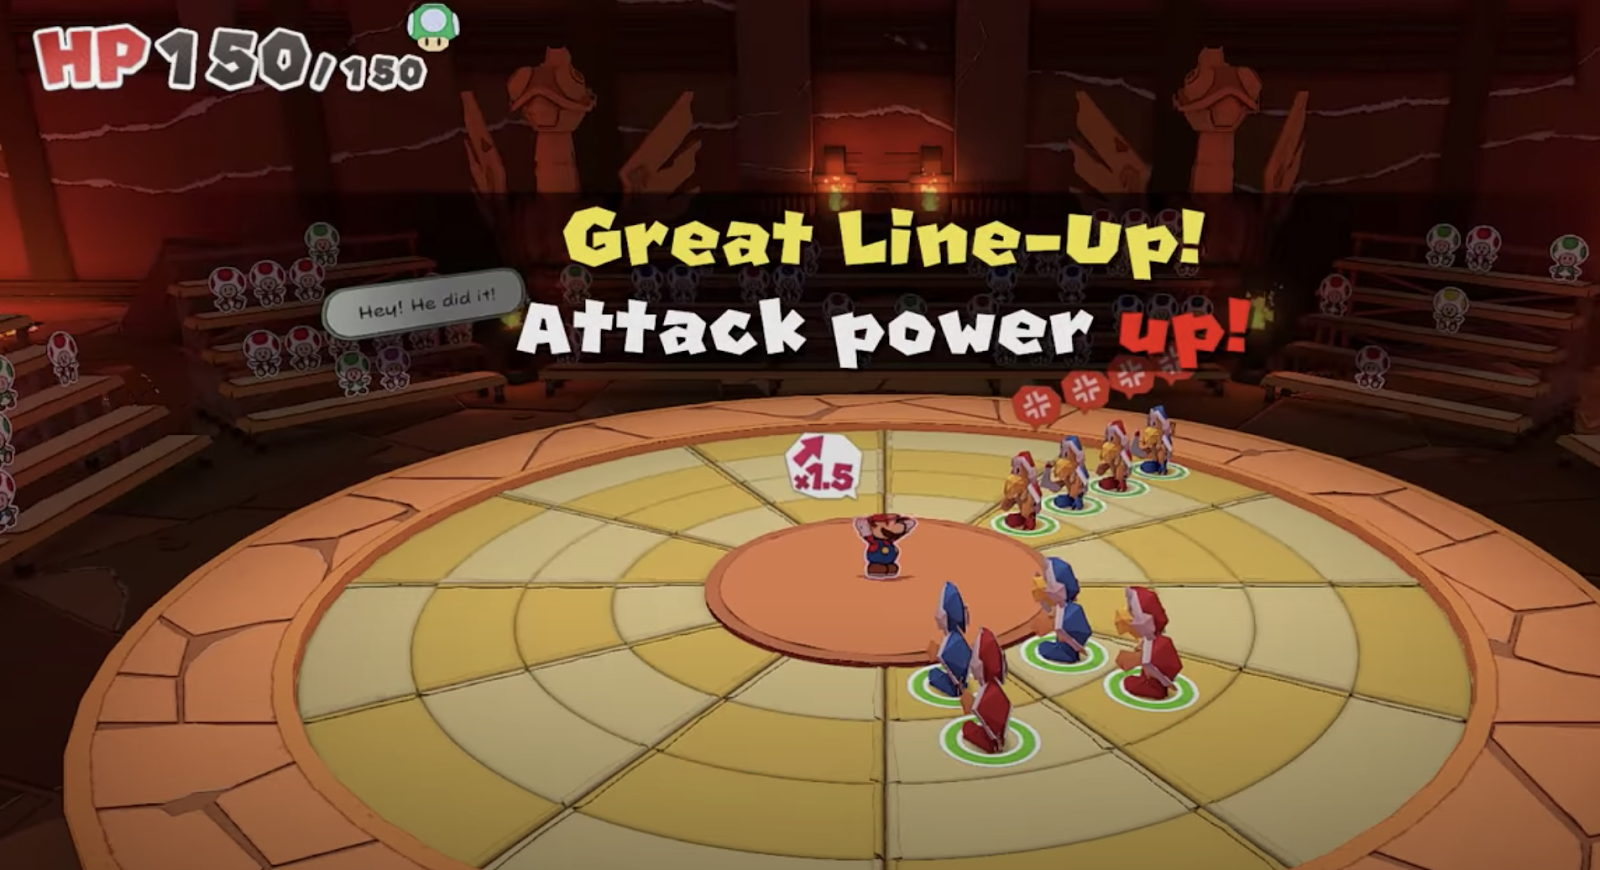 "Mario stands in the middle of a dartboard-like area containing concentric circles. Koopas stand in various places on the circle. Large text reads ""Great Line-Up! Attack power up!"" A large HP meter in the upper left corner reads 150/150."